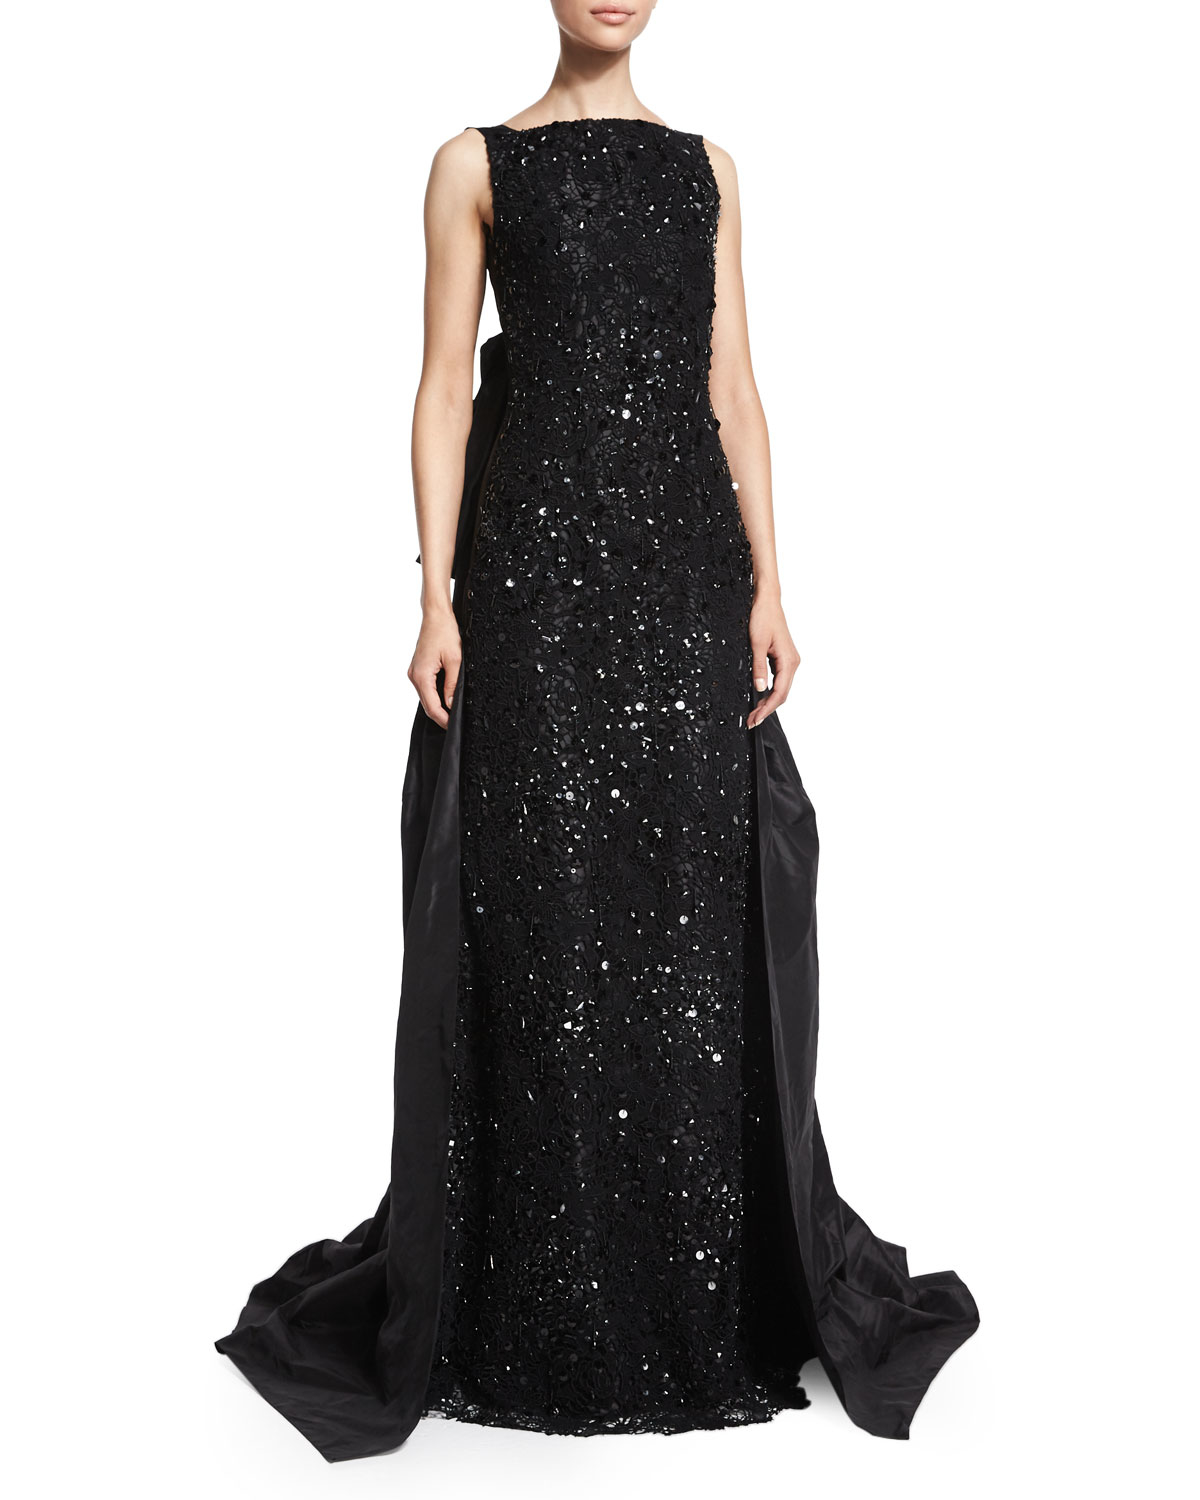 lyst oscar de la renta embellished gown dress in black. Black Bedroom Furniture Sets. Home Design Ideas